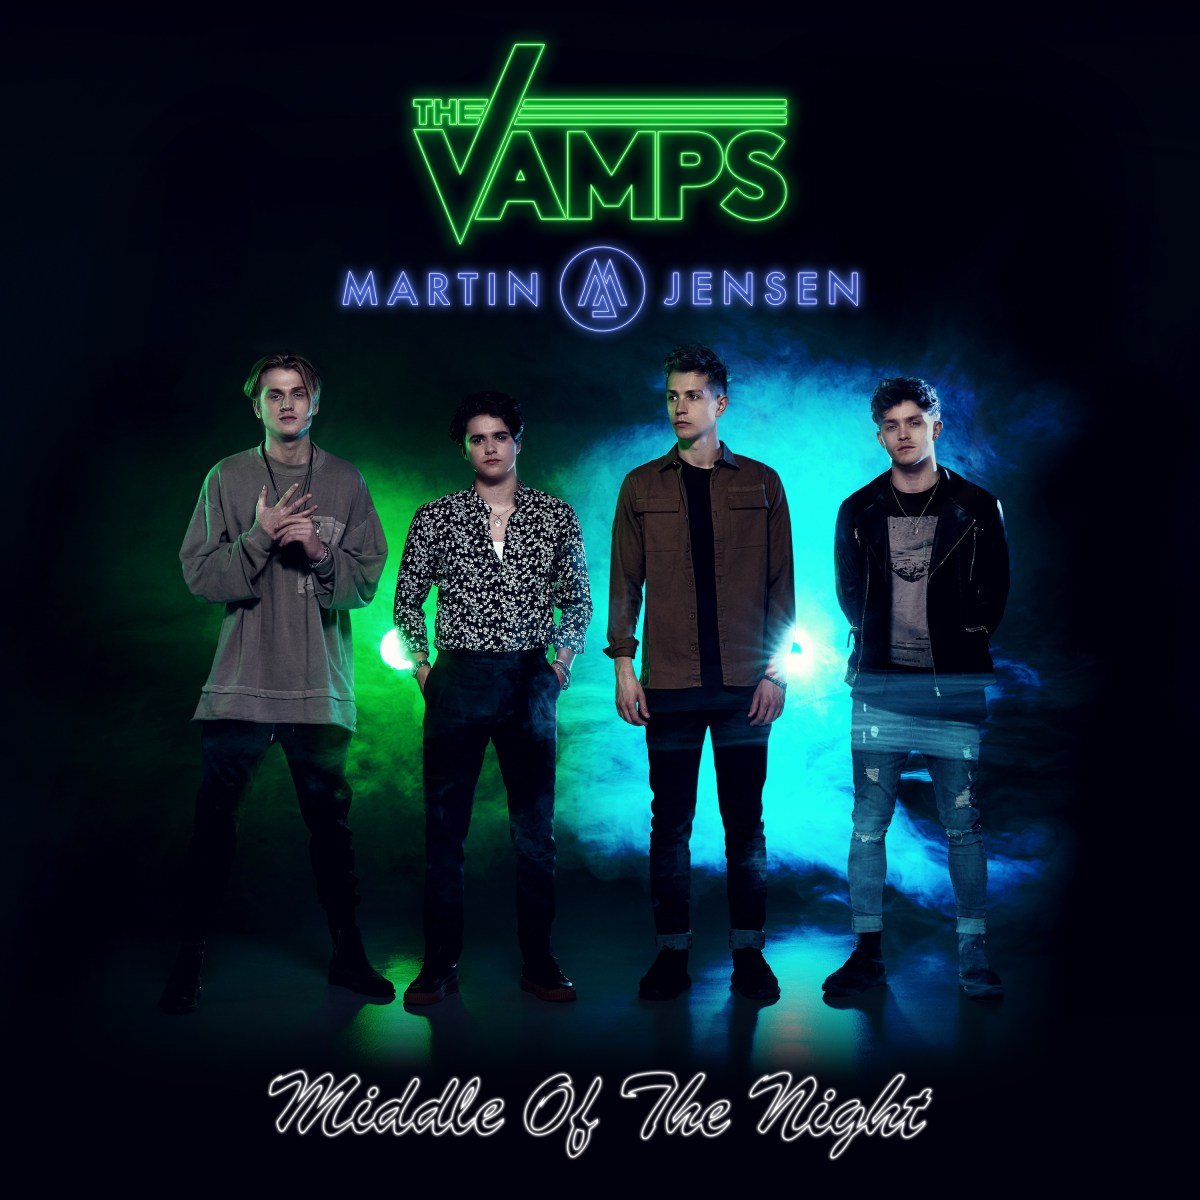 THE VAMPS ANNOUNCE NEW SINGLE  'MIDDLE OF THE NIGHT'  OUT FRIDAY 28TH APRIL